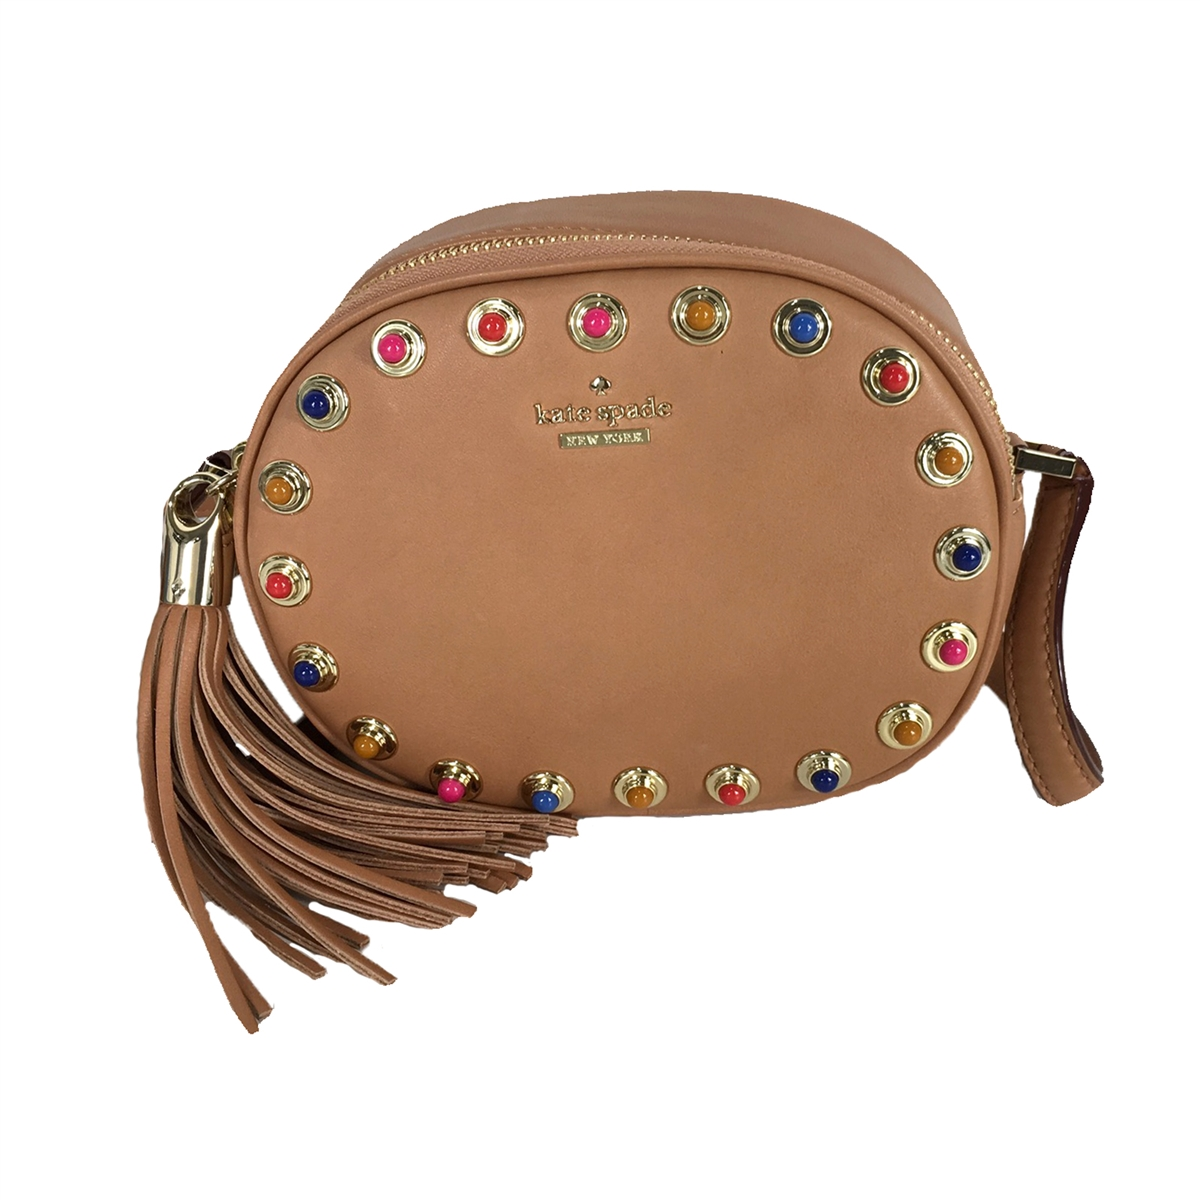 cheaper sale browse latest collections 100% original Kate Spade Tinley Colorful Studs Leather Camera Crossbody, Marsala Brown